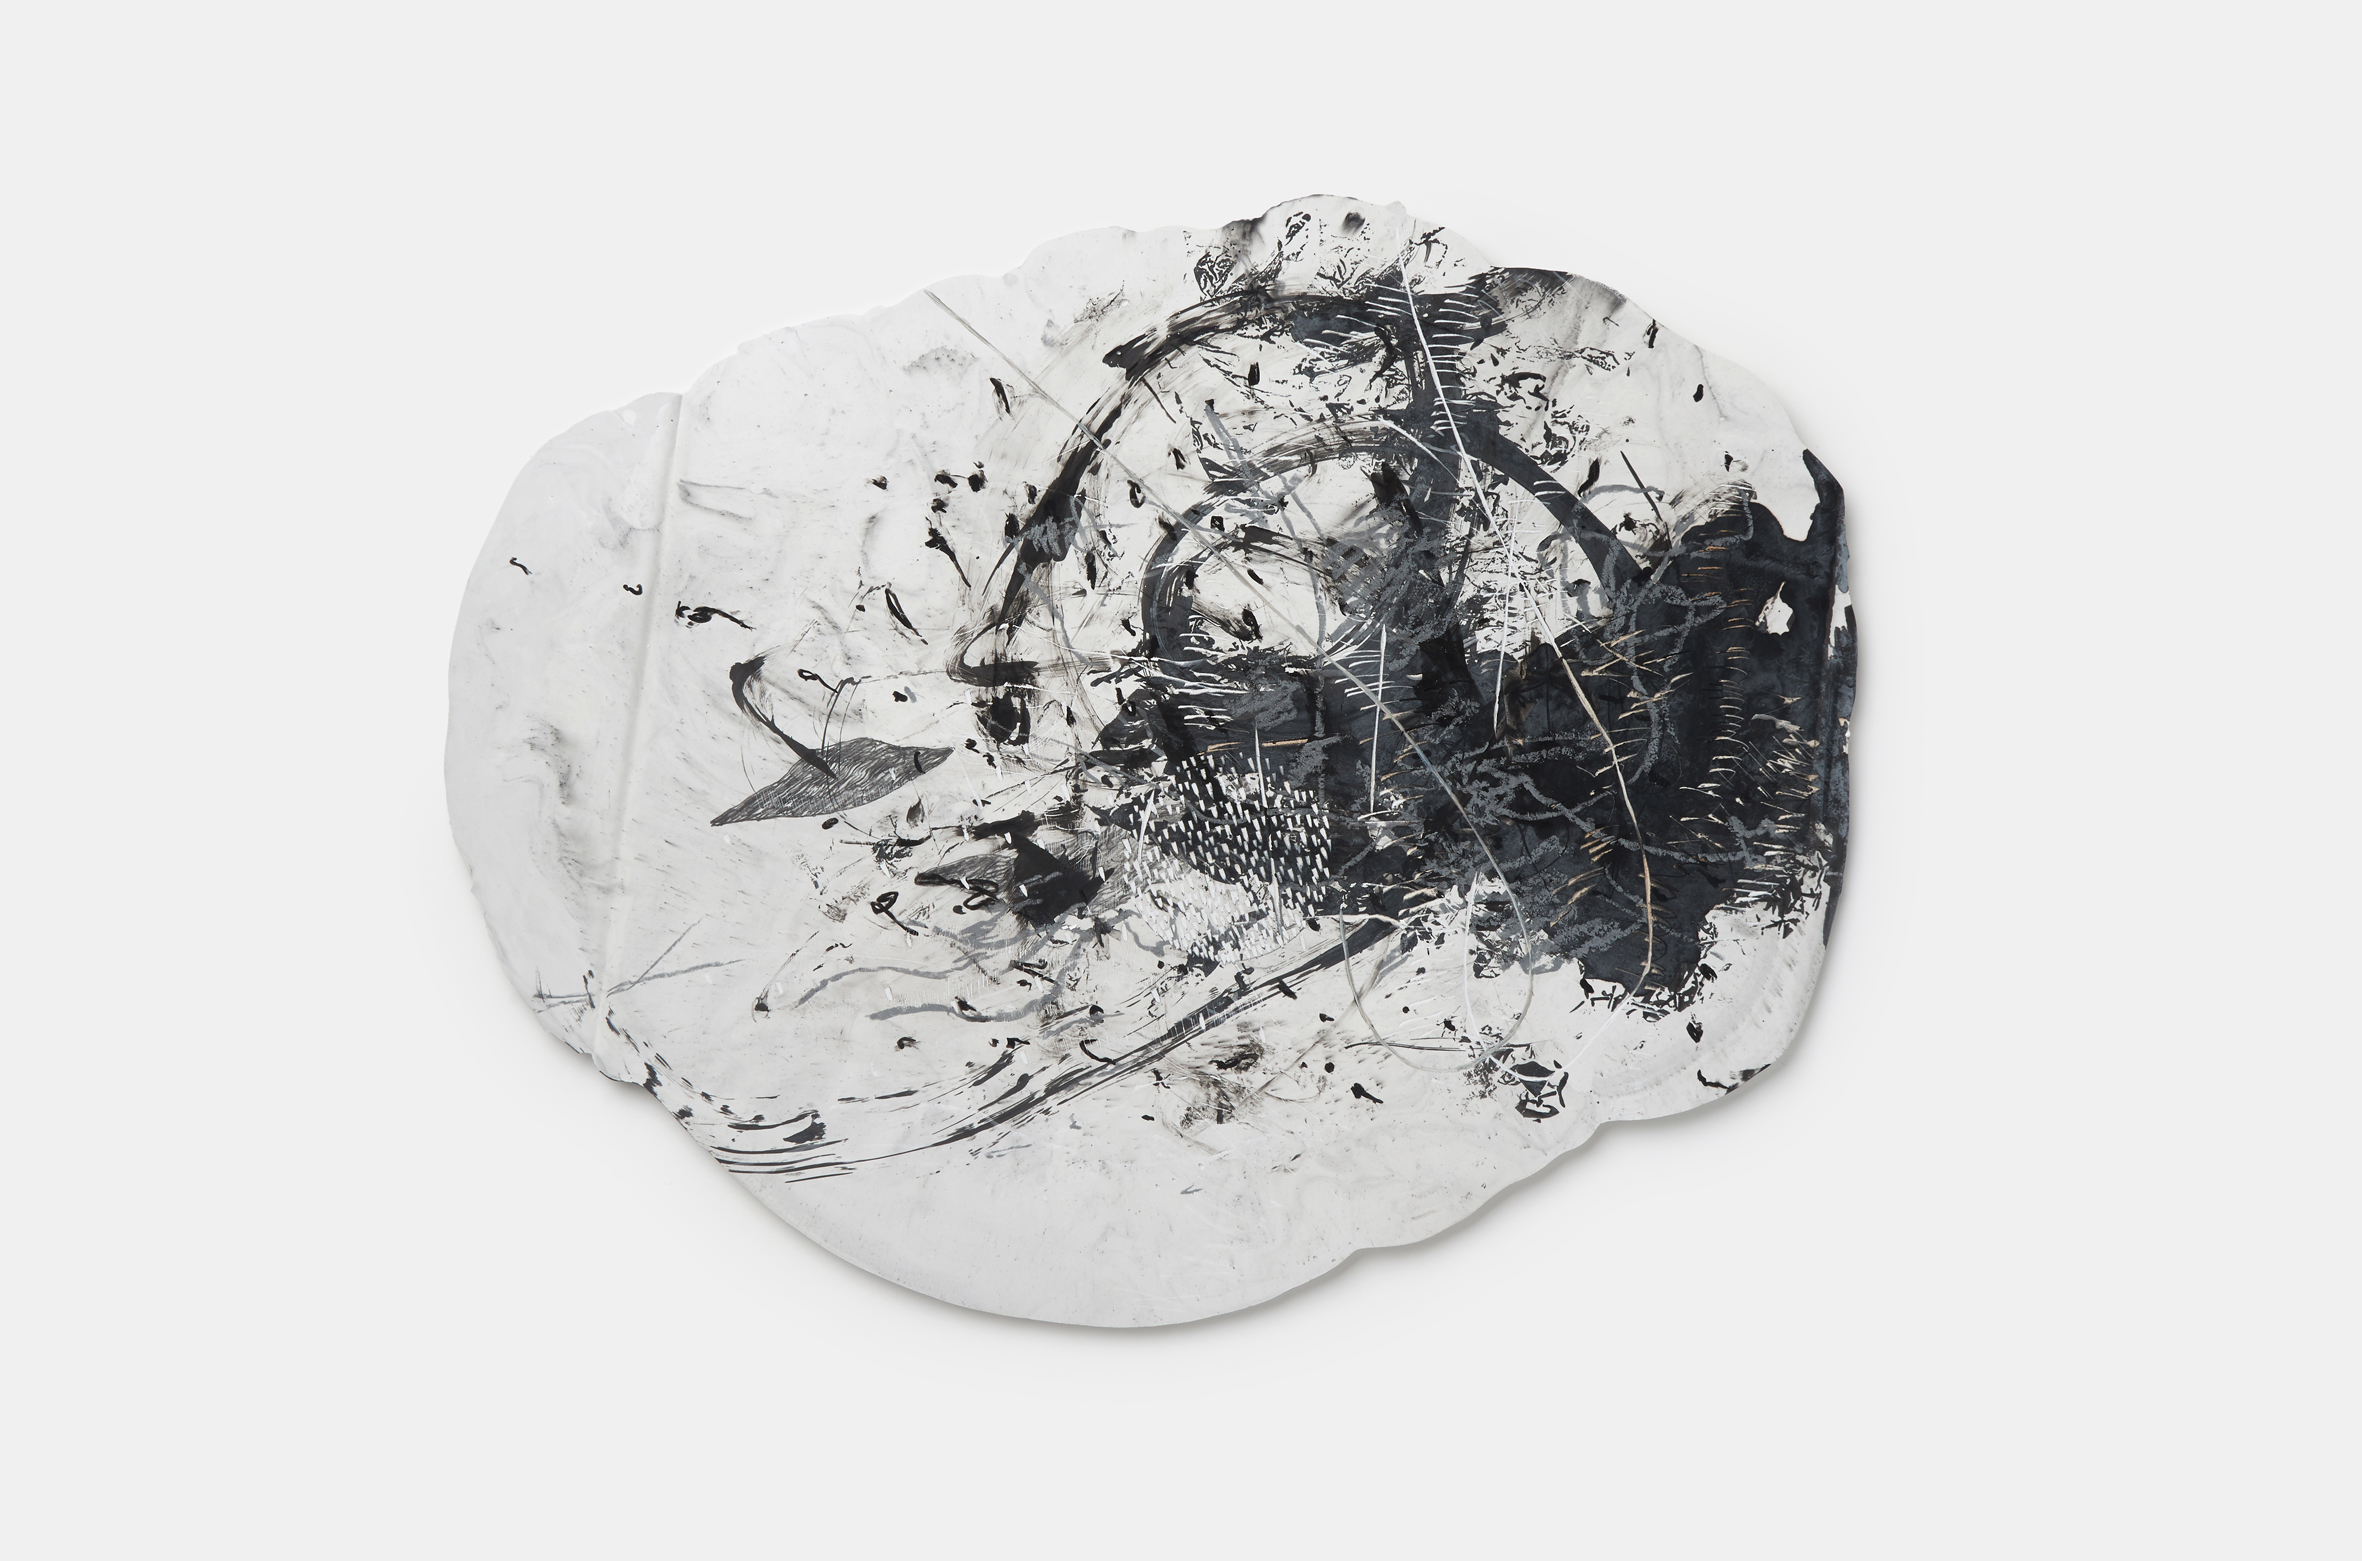 Vomit series #7  Engraving on plaster panel, mixture of ink and dry materials, silver sumi ink, pencil, oil pastel 57x43cm 2018